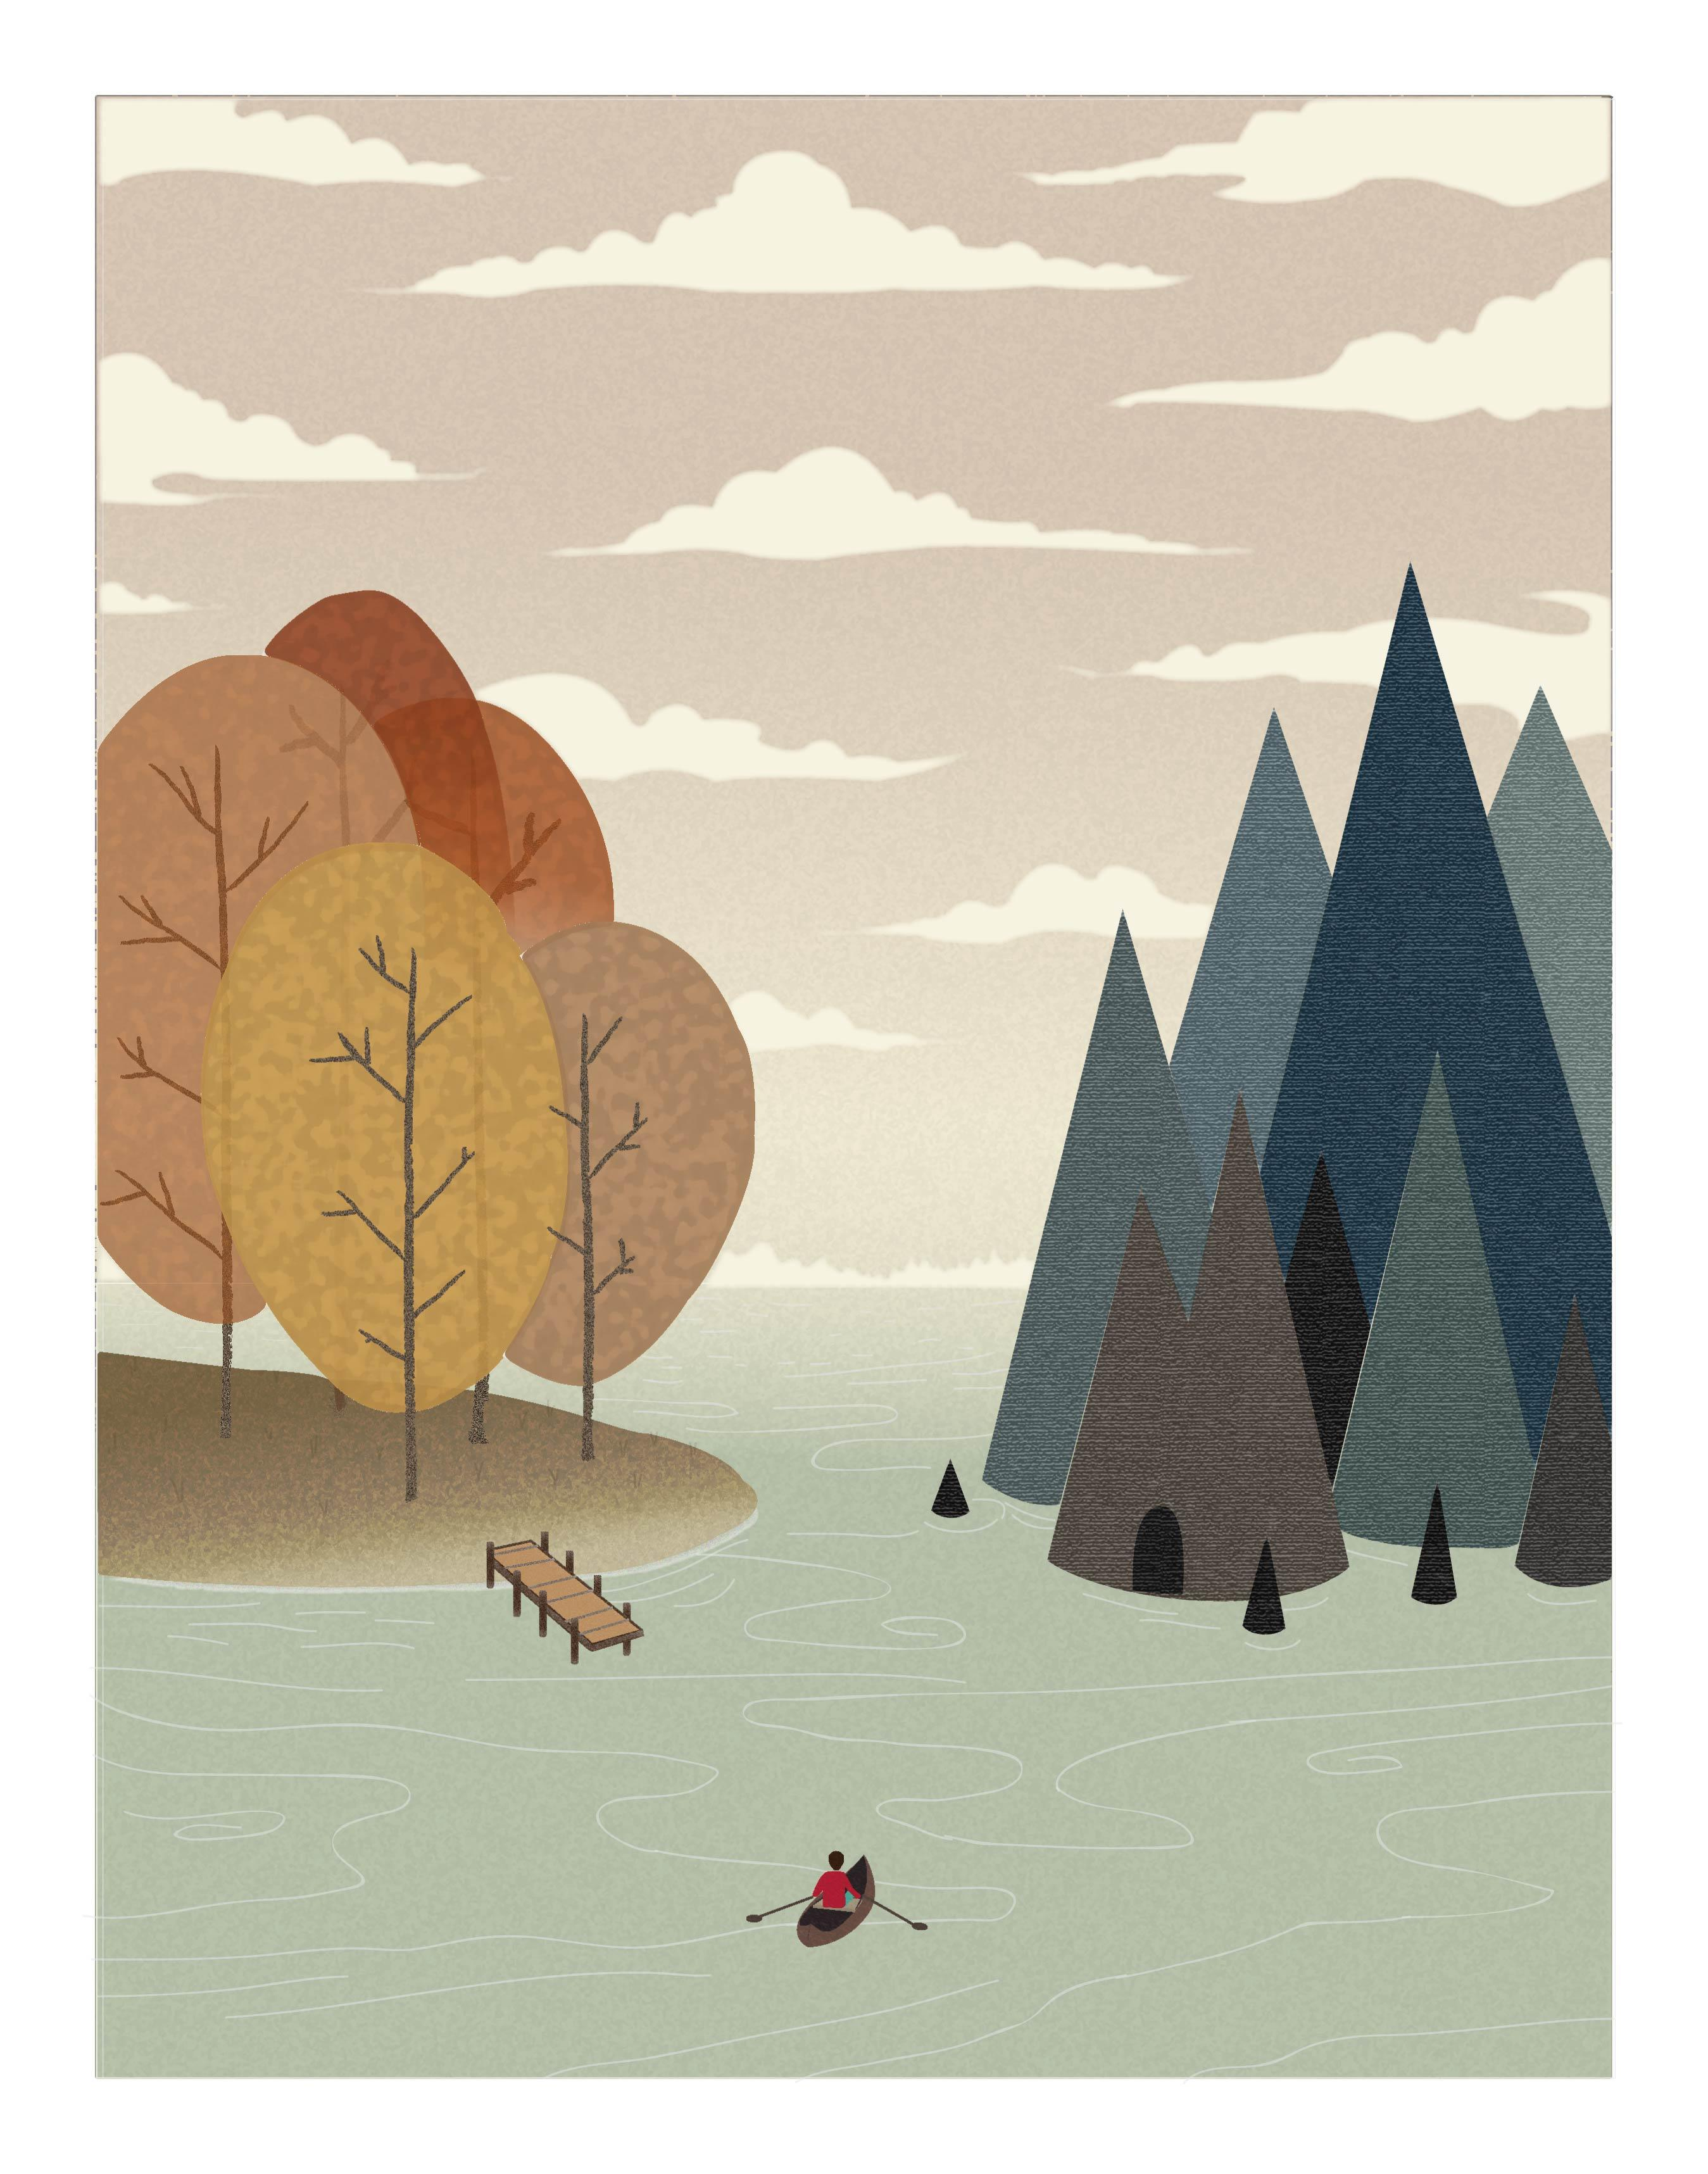 Little Canoe - image 4 - student project